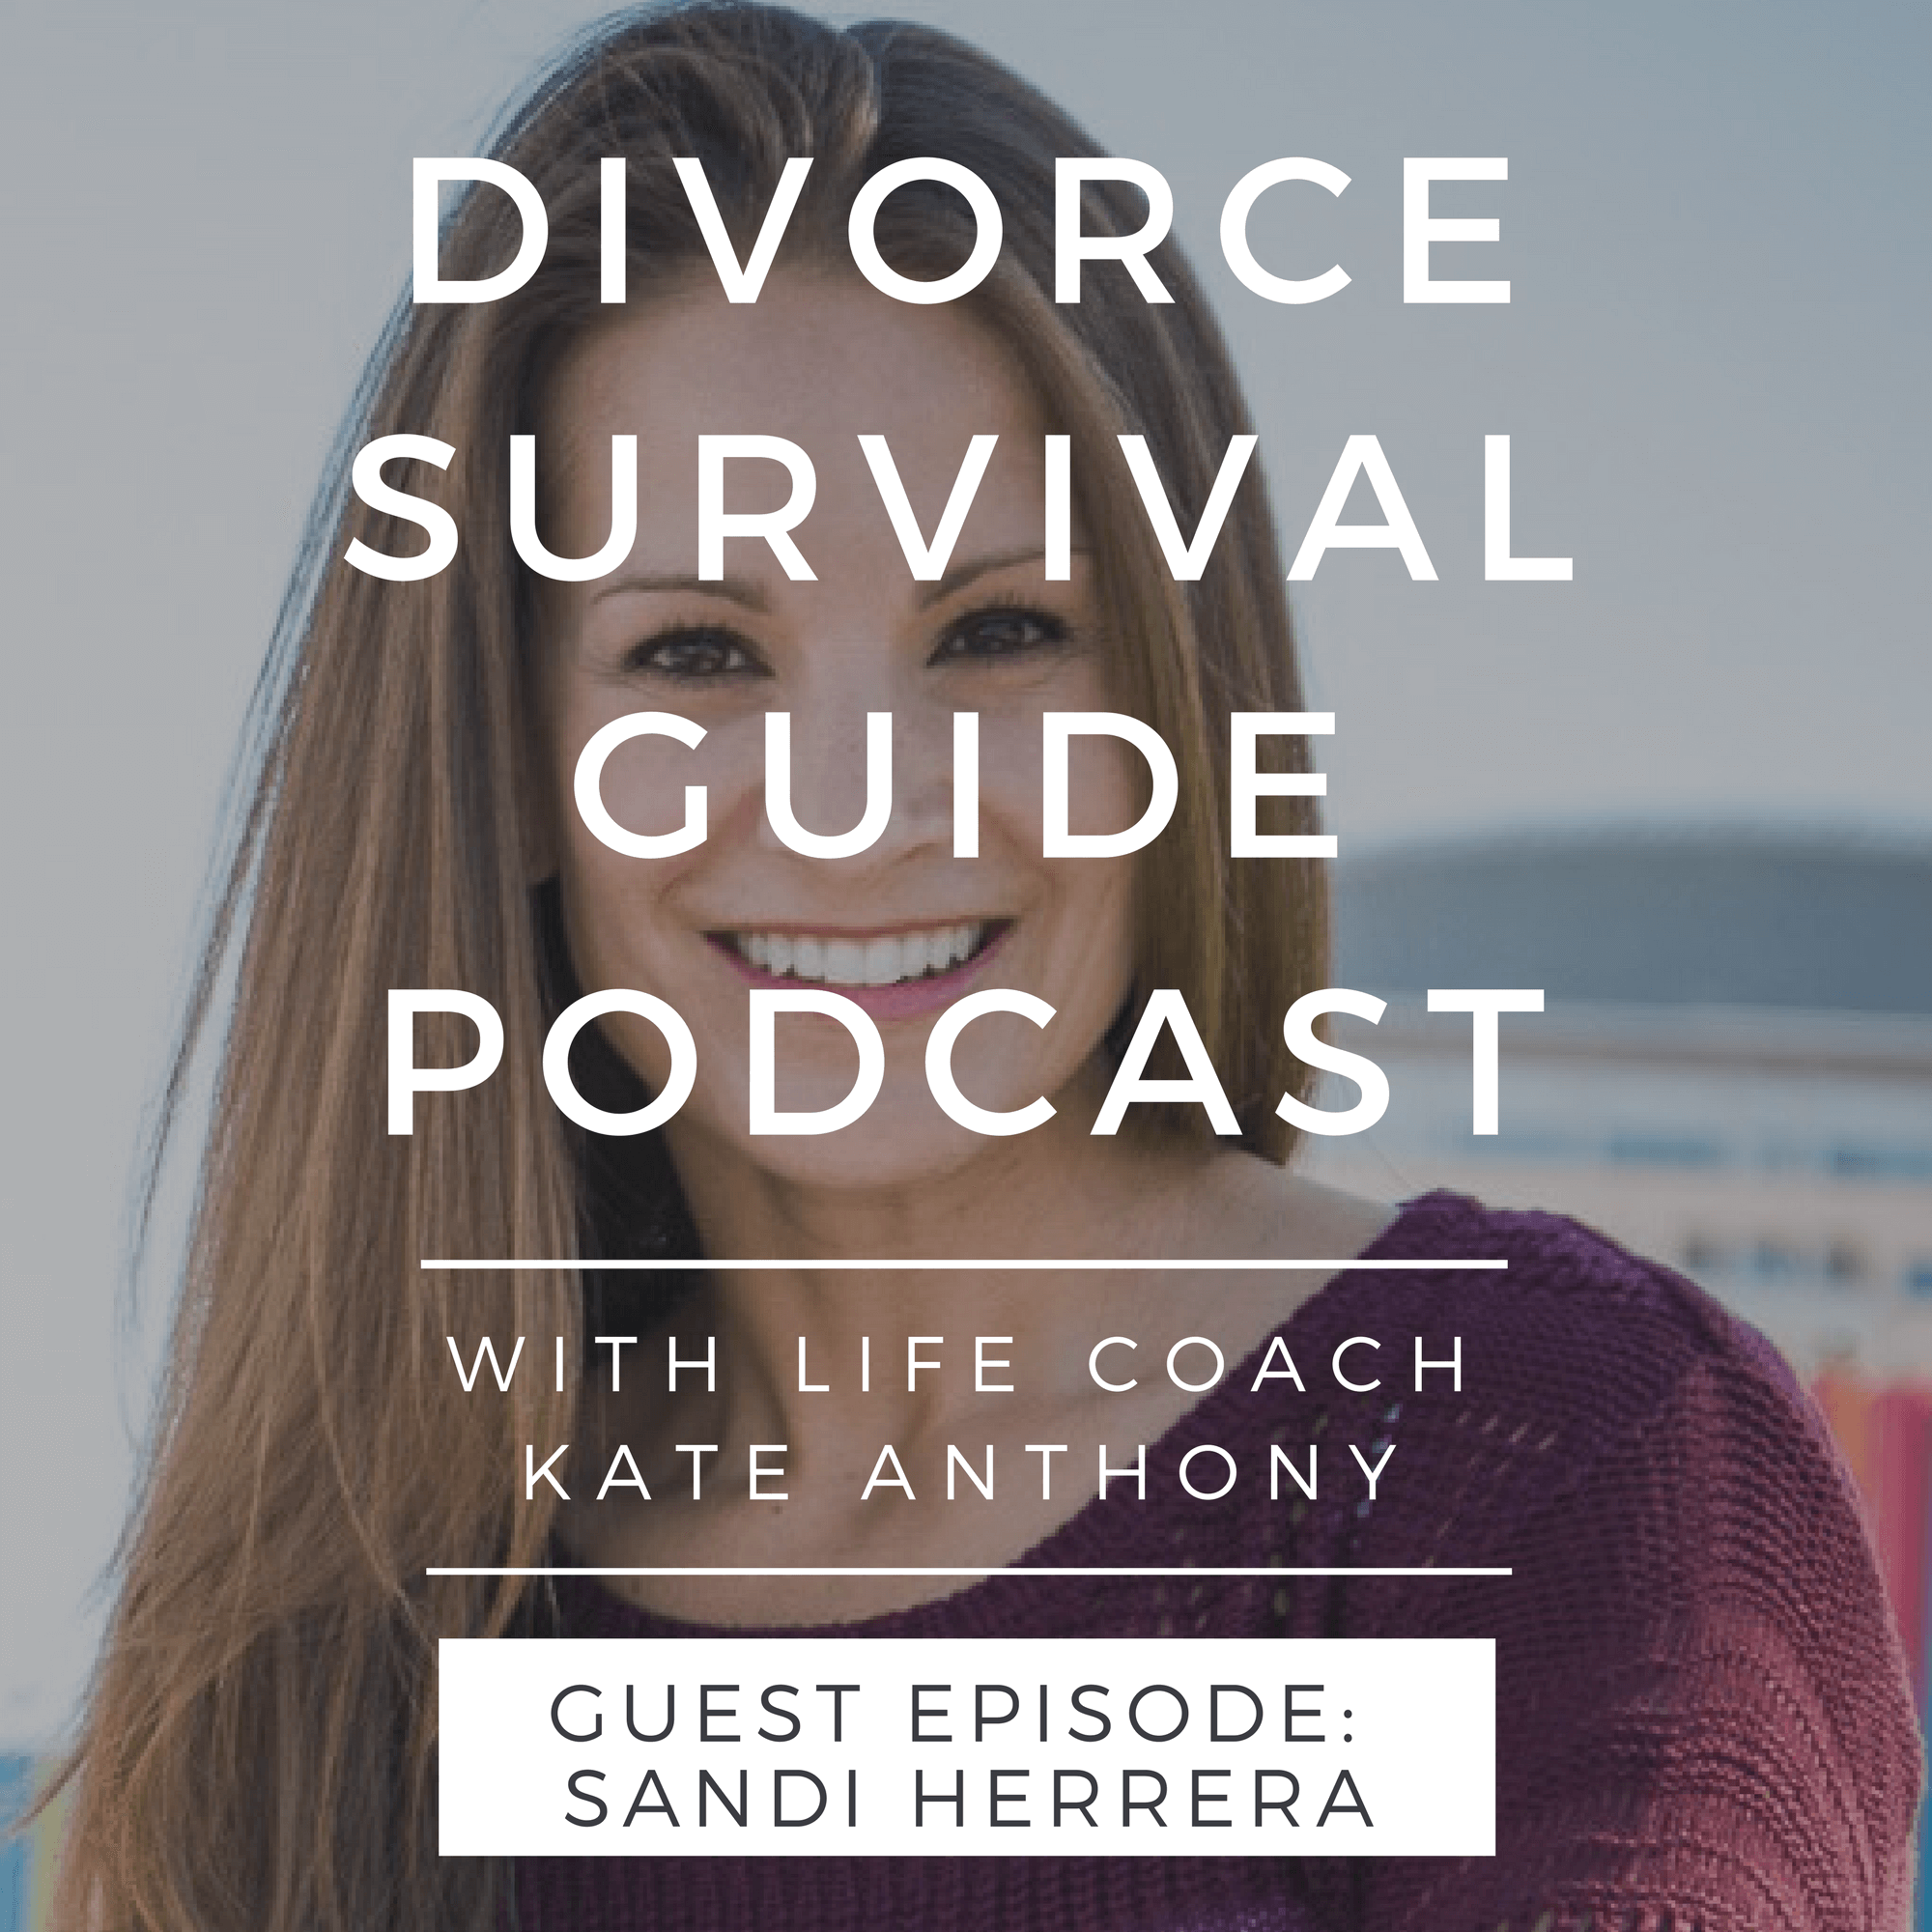 The Divorce Survival Guide Podcast - How I married and divorced the same man twice